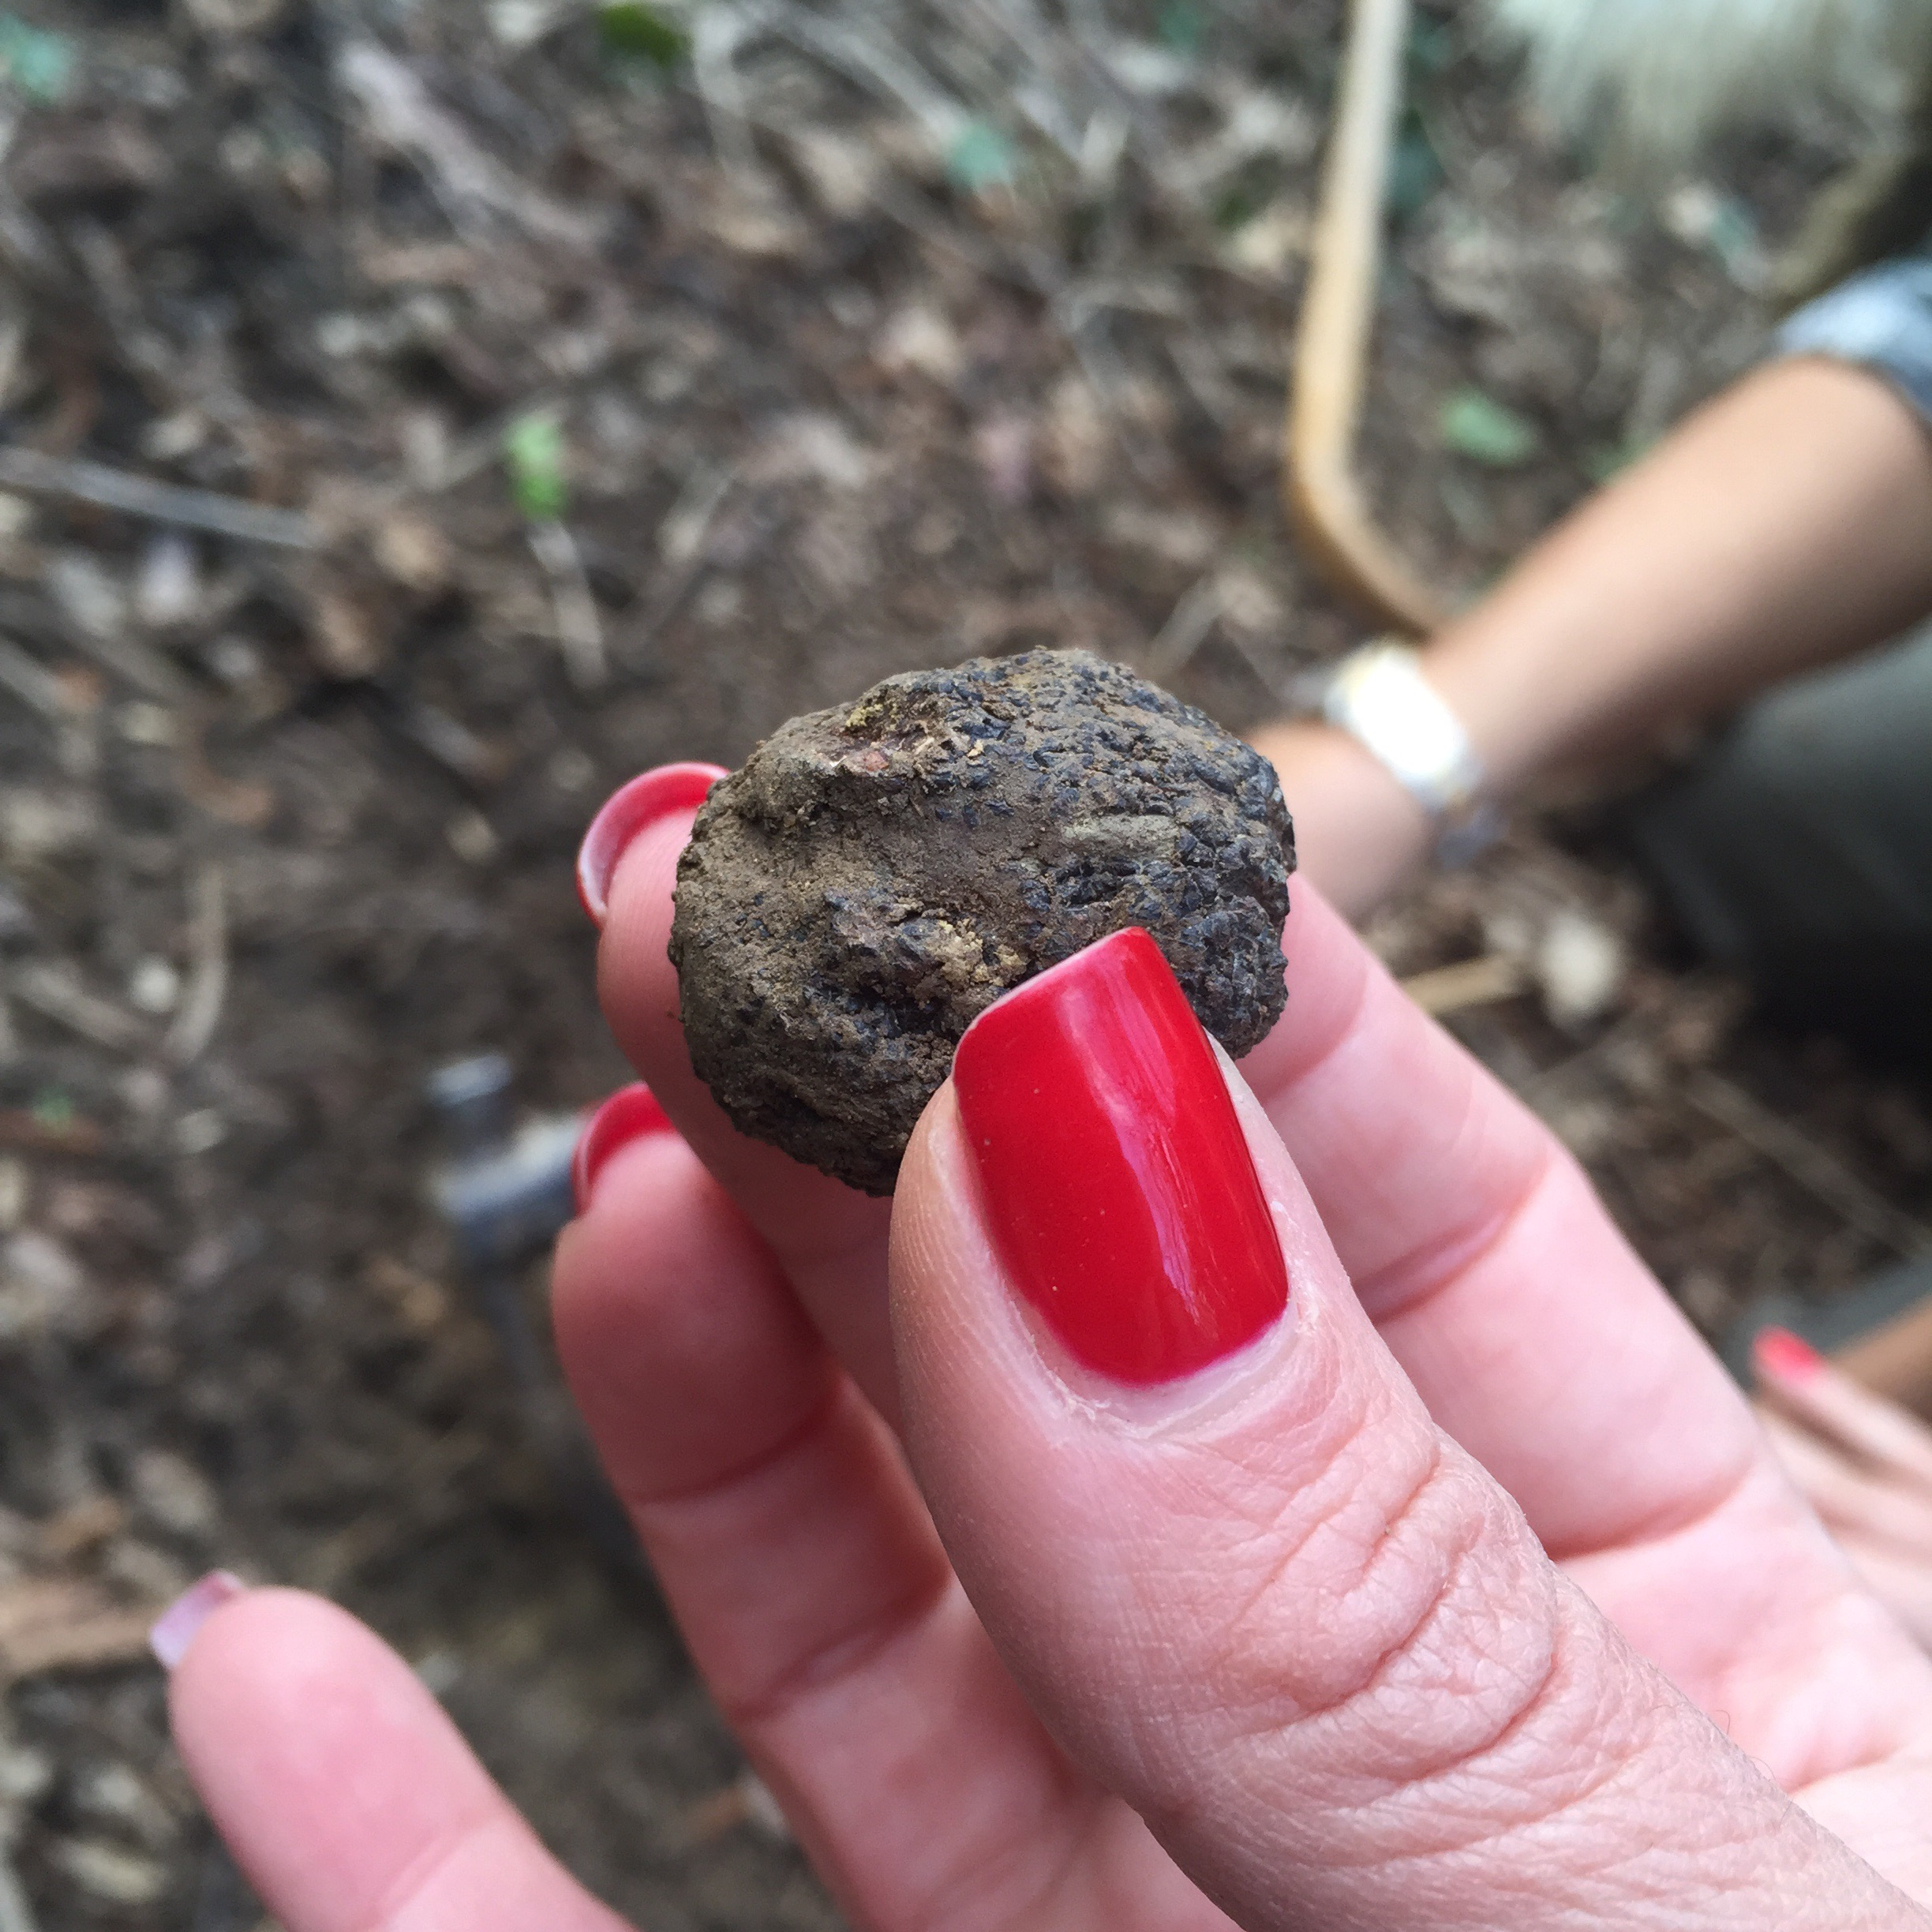 You can go on a truffle hunt with a local hunter to find some black truffle like this